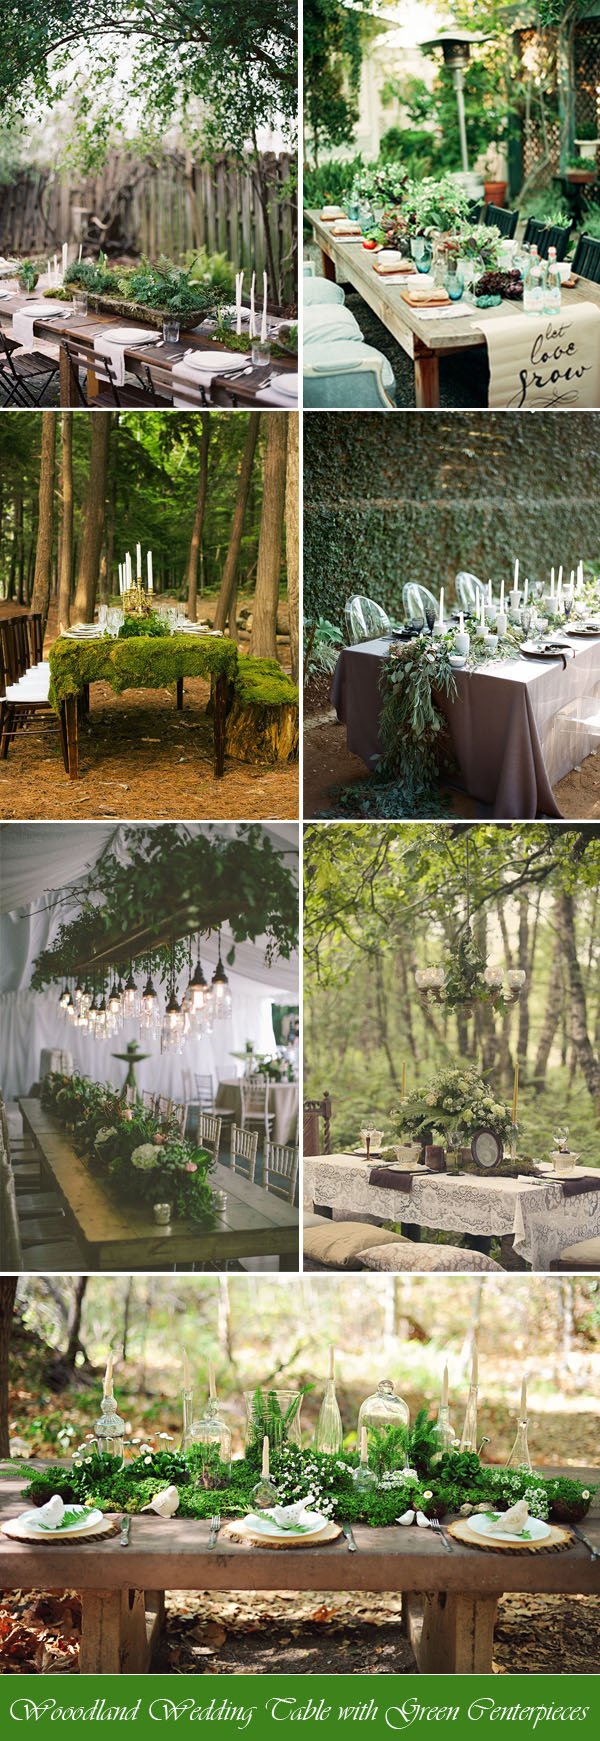 Wooodland Wedding Table with Green Centerpieces